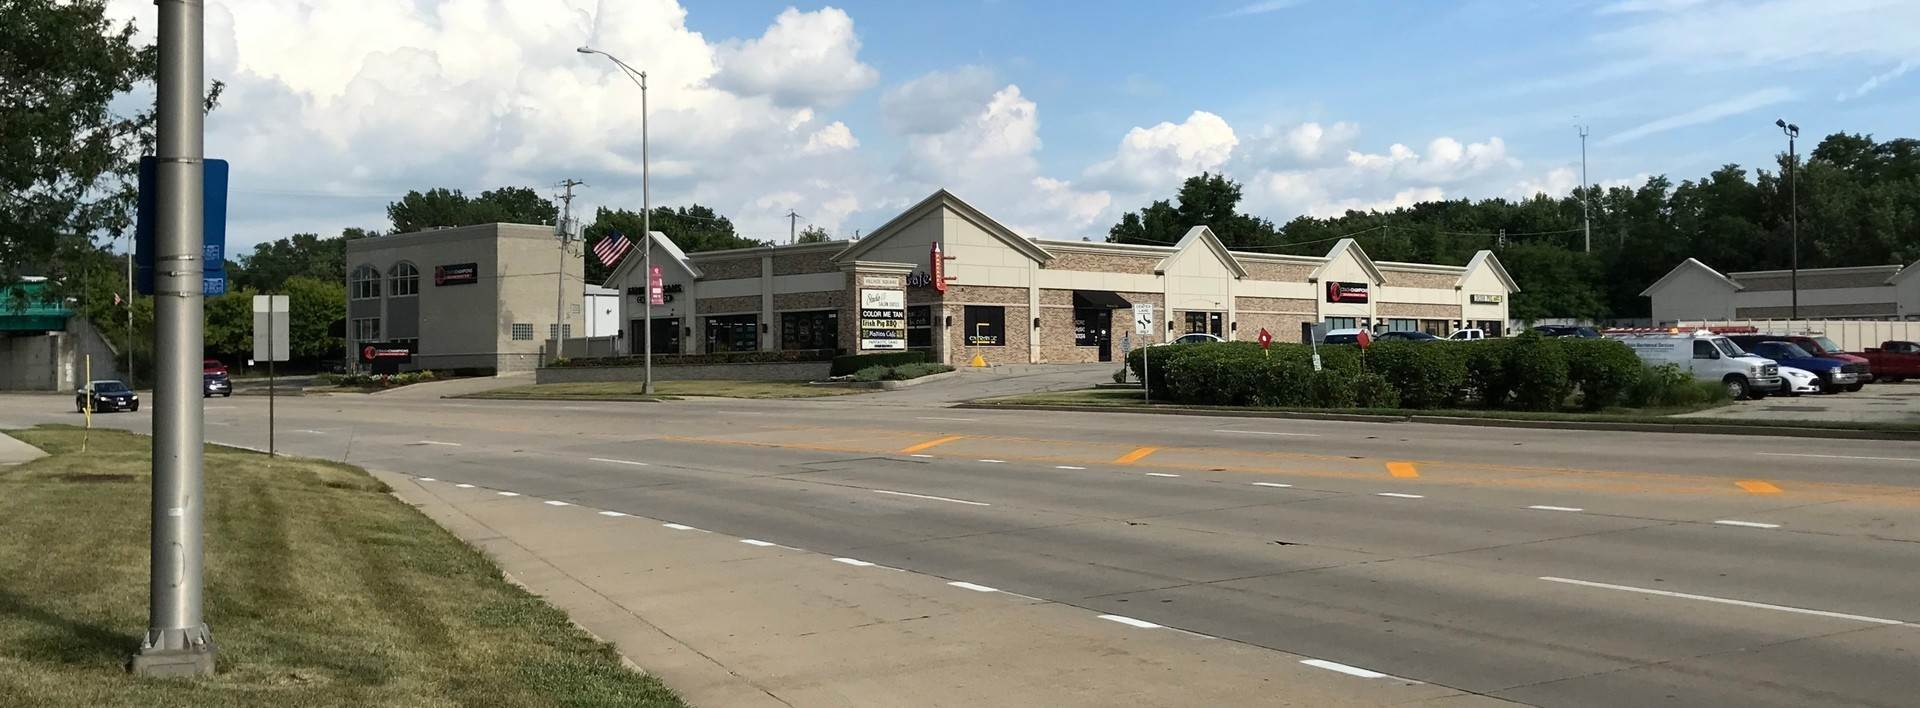 Commercial for Sale at 290 E Lincoln Highway New Lenox, Illinois 60451 United States